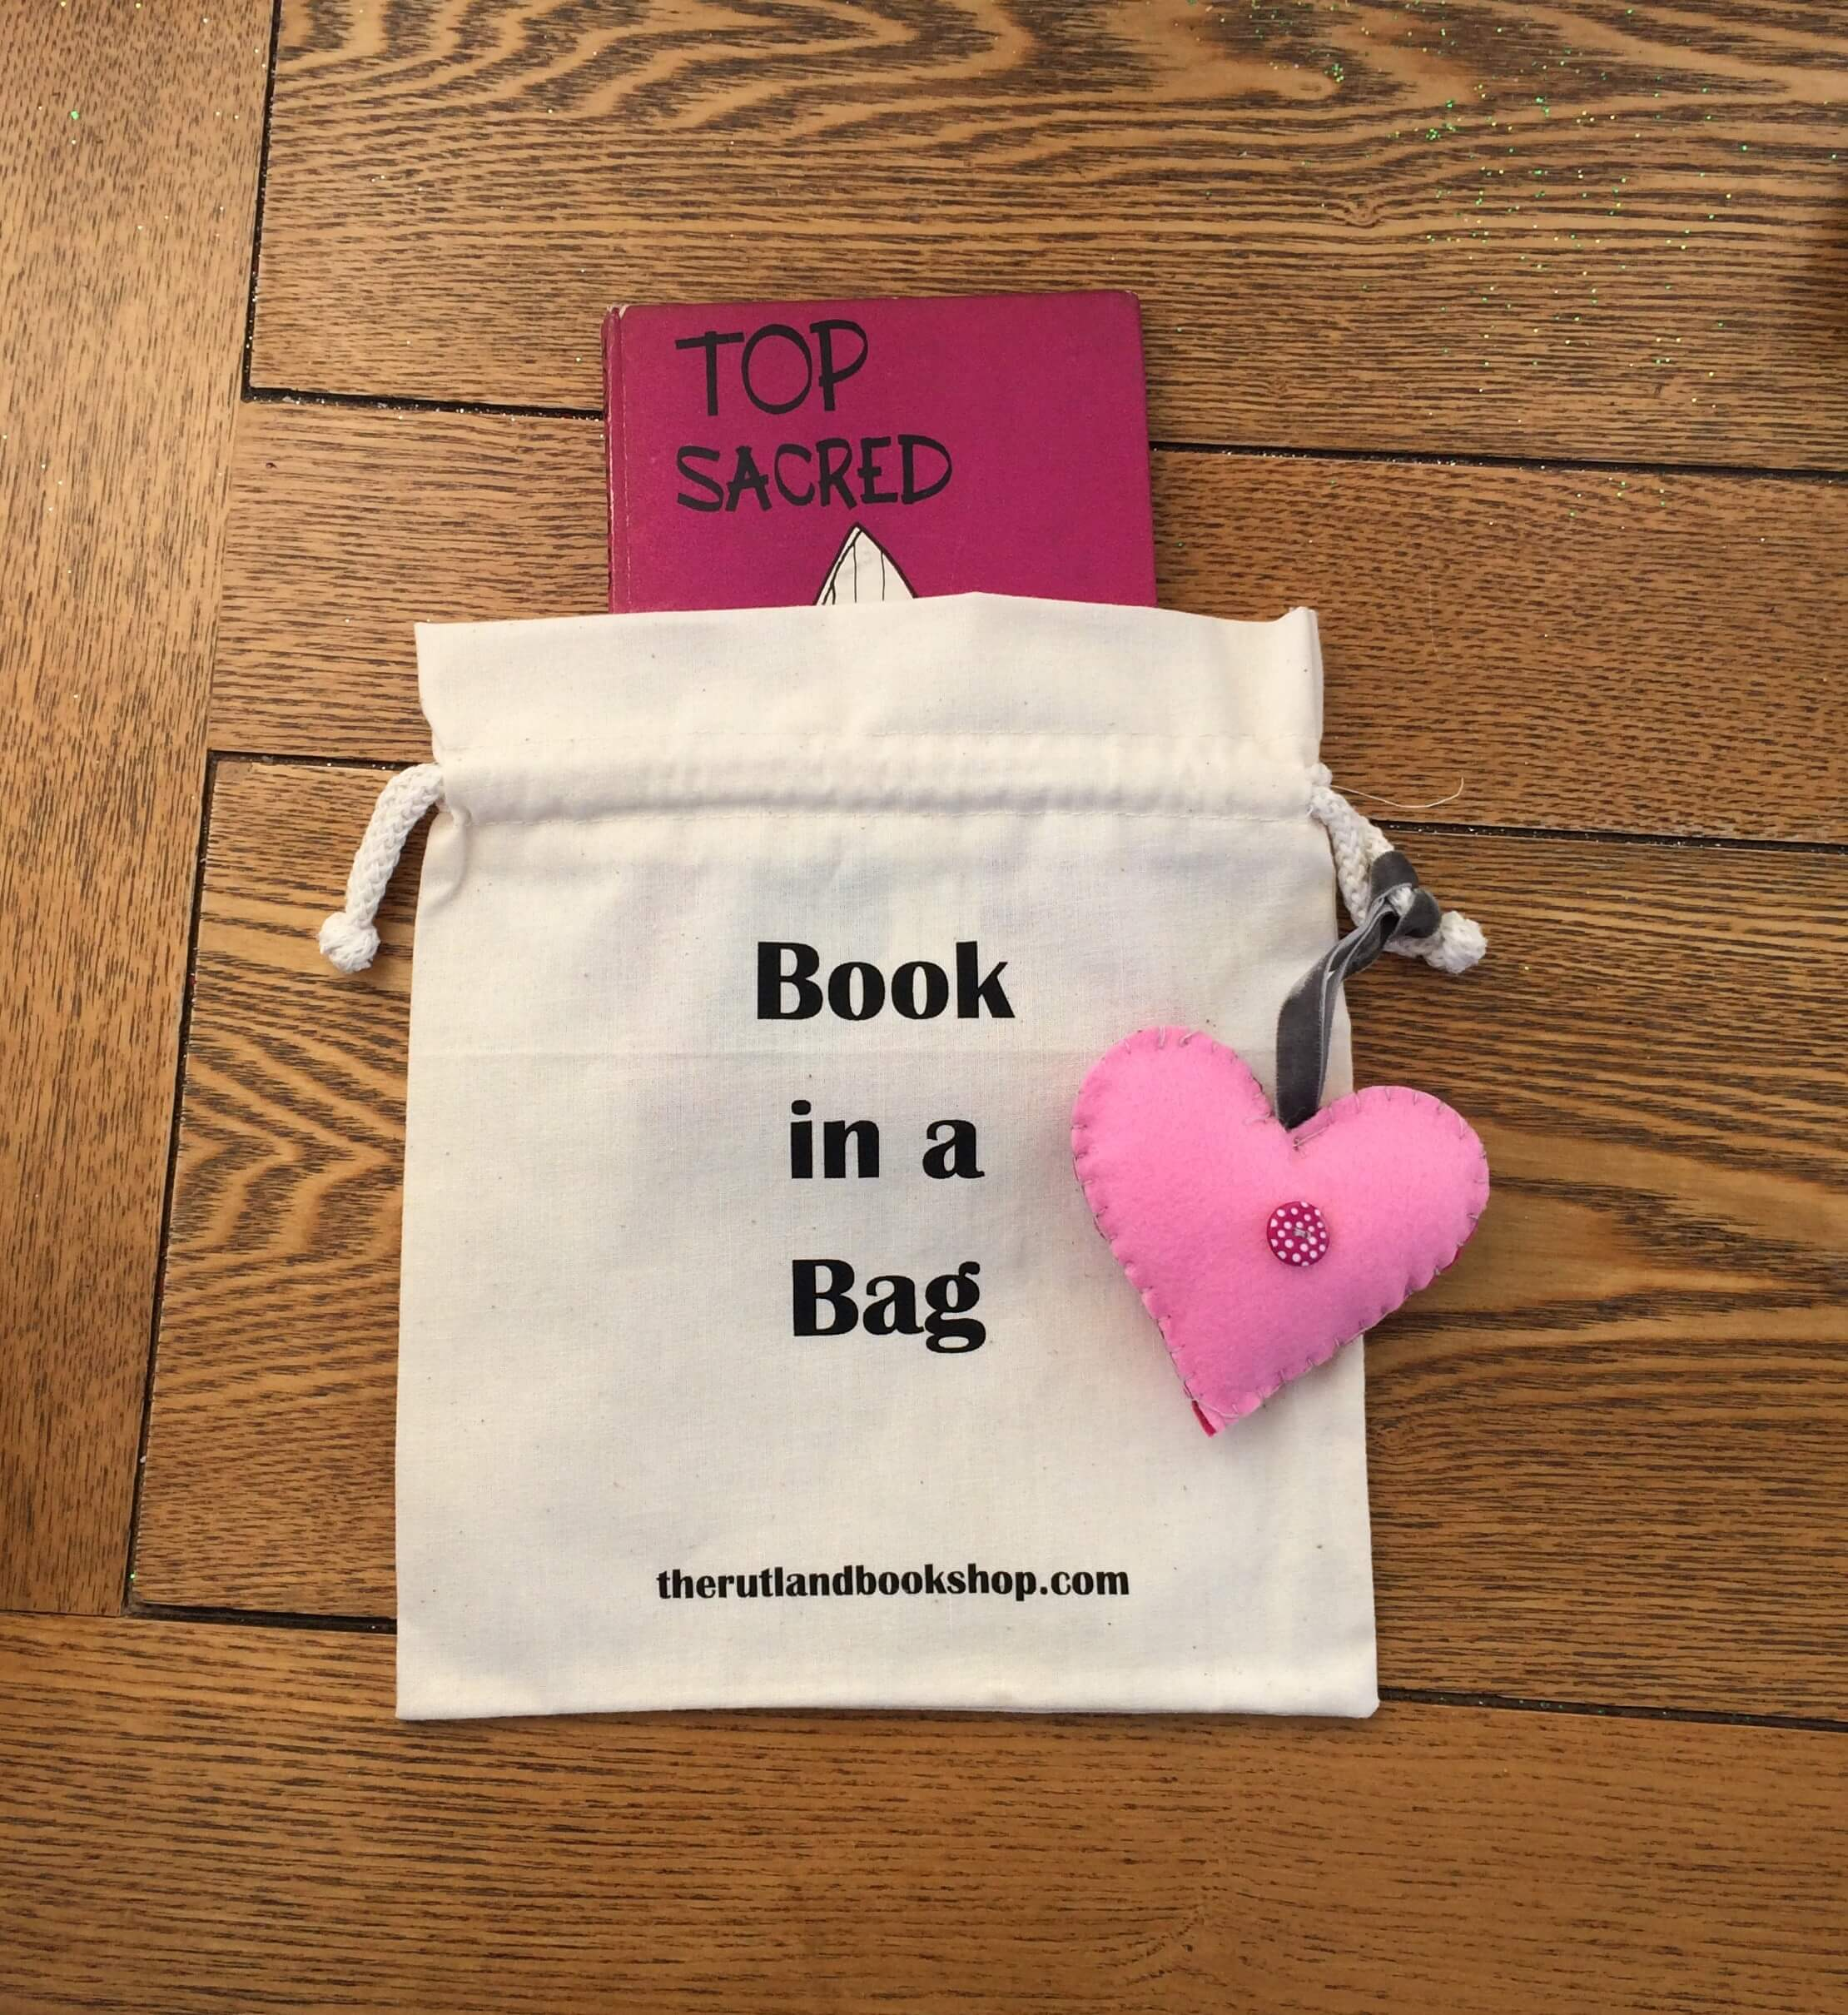 Top Sacred By Phelix (Book In A Bag)